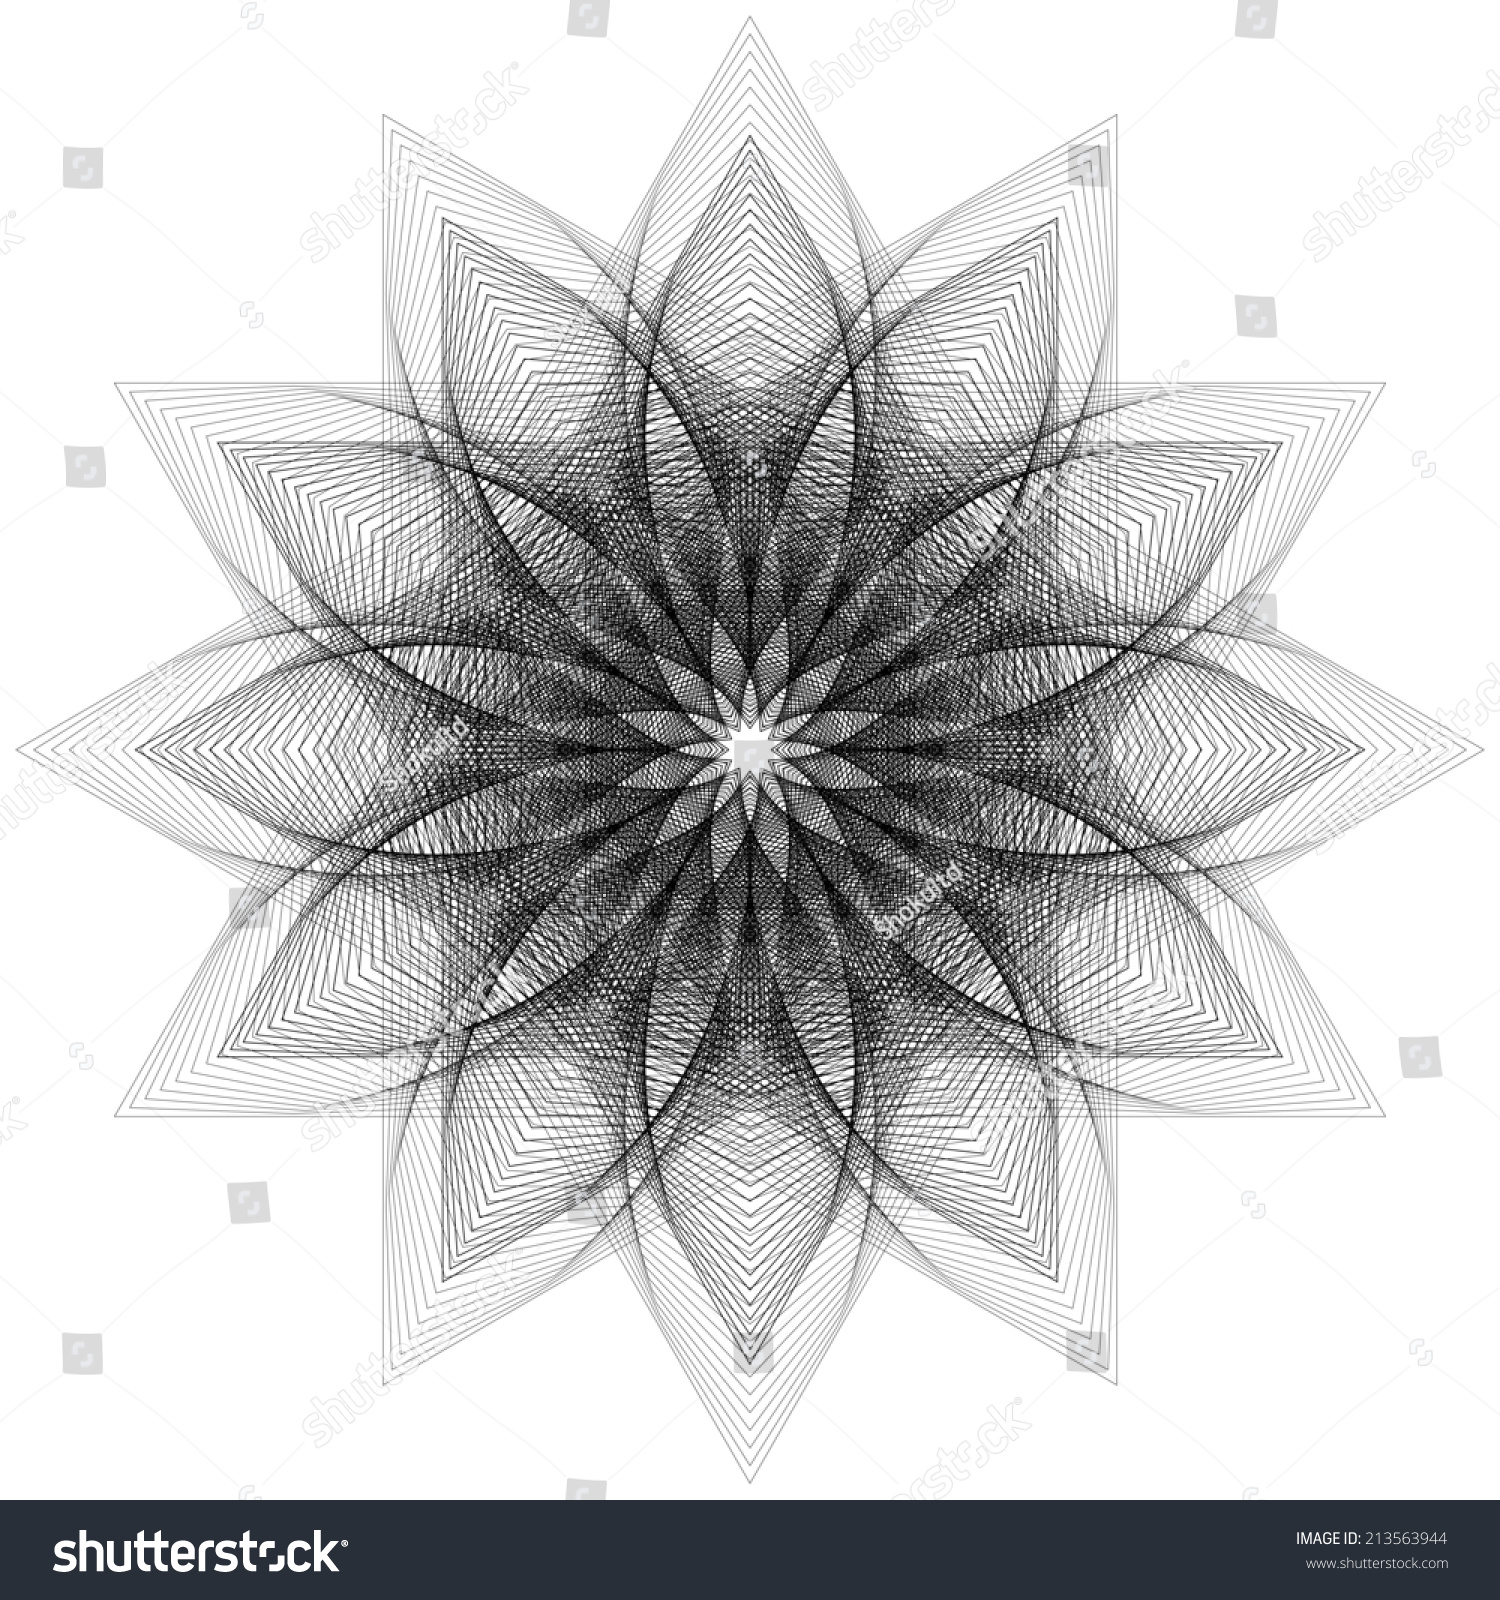 Digital Line Art : Abstract digital line art floral pattern stock